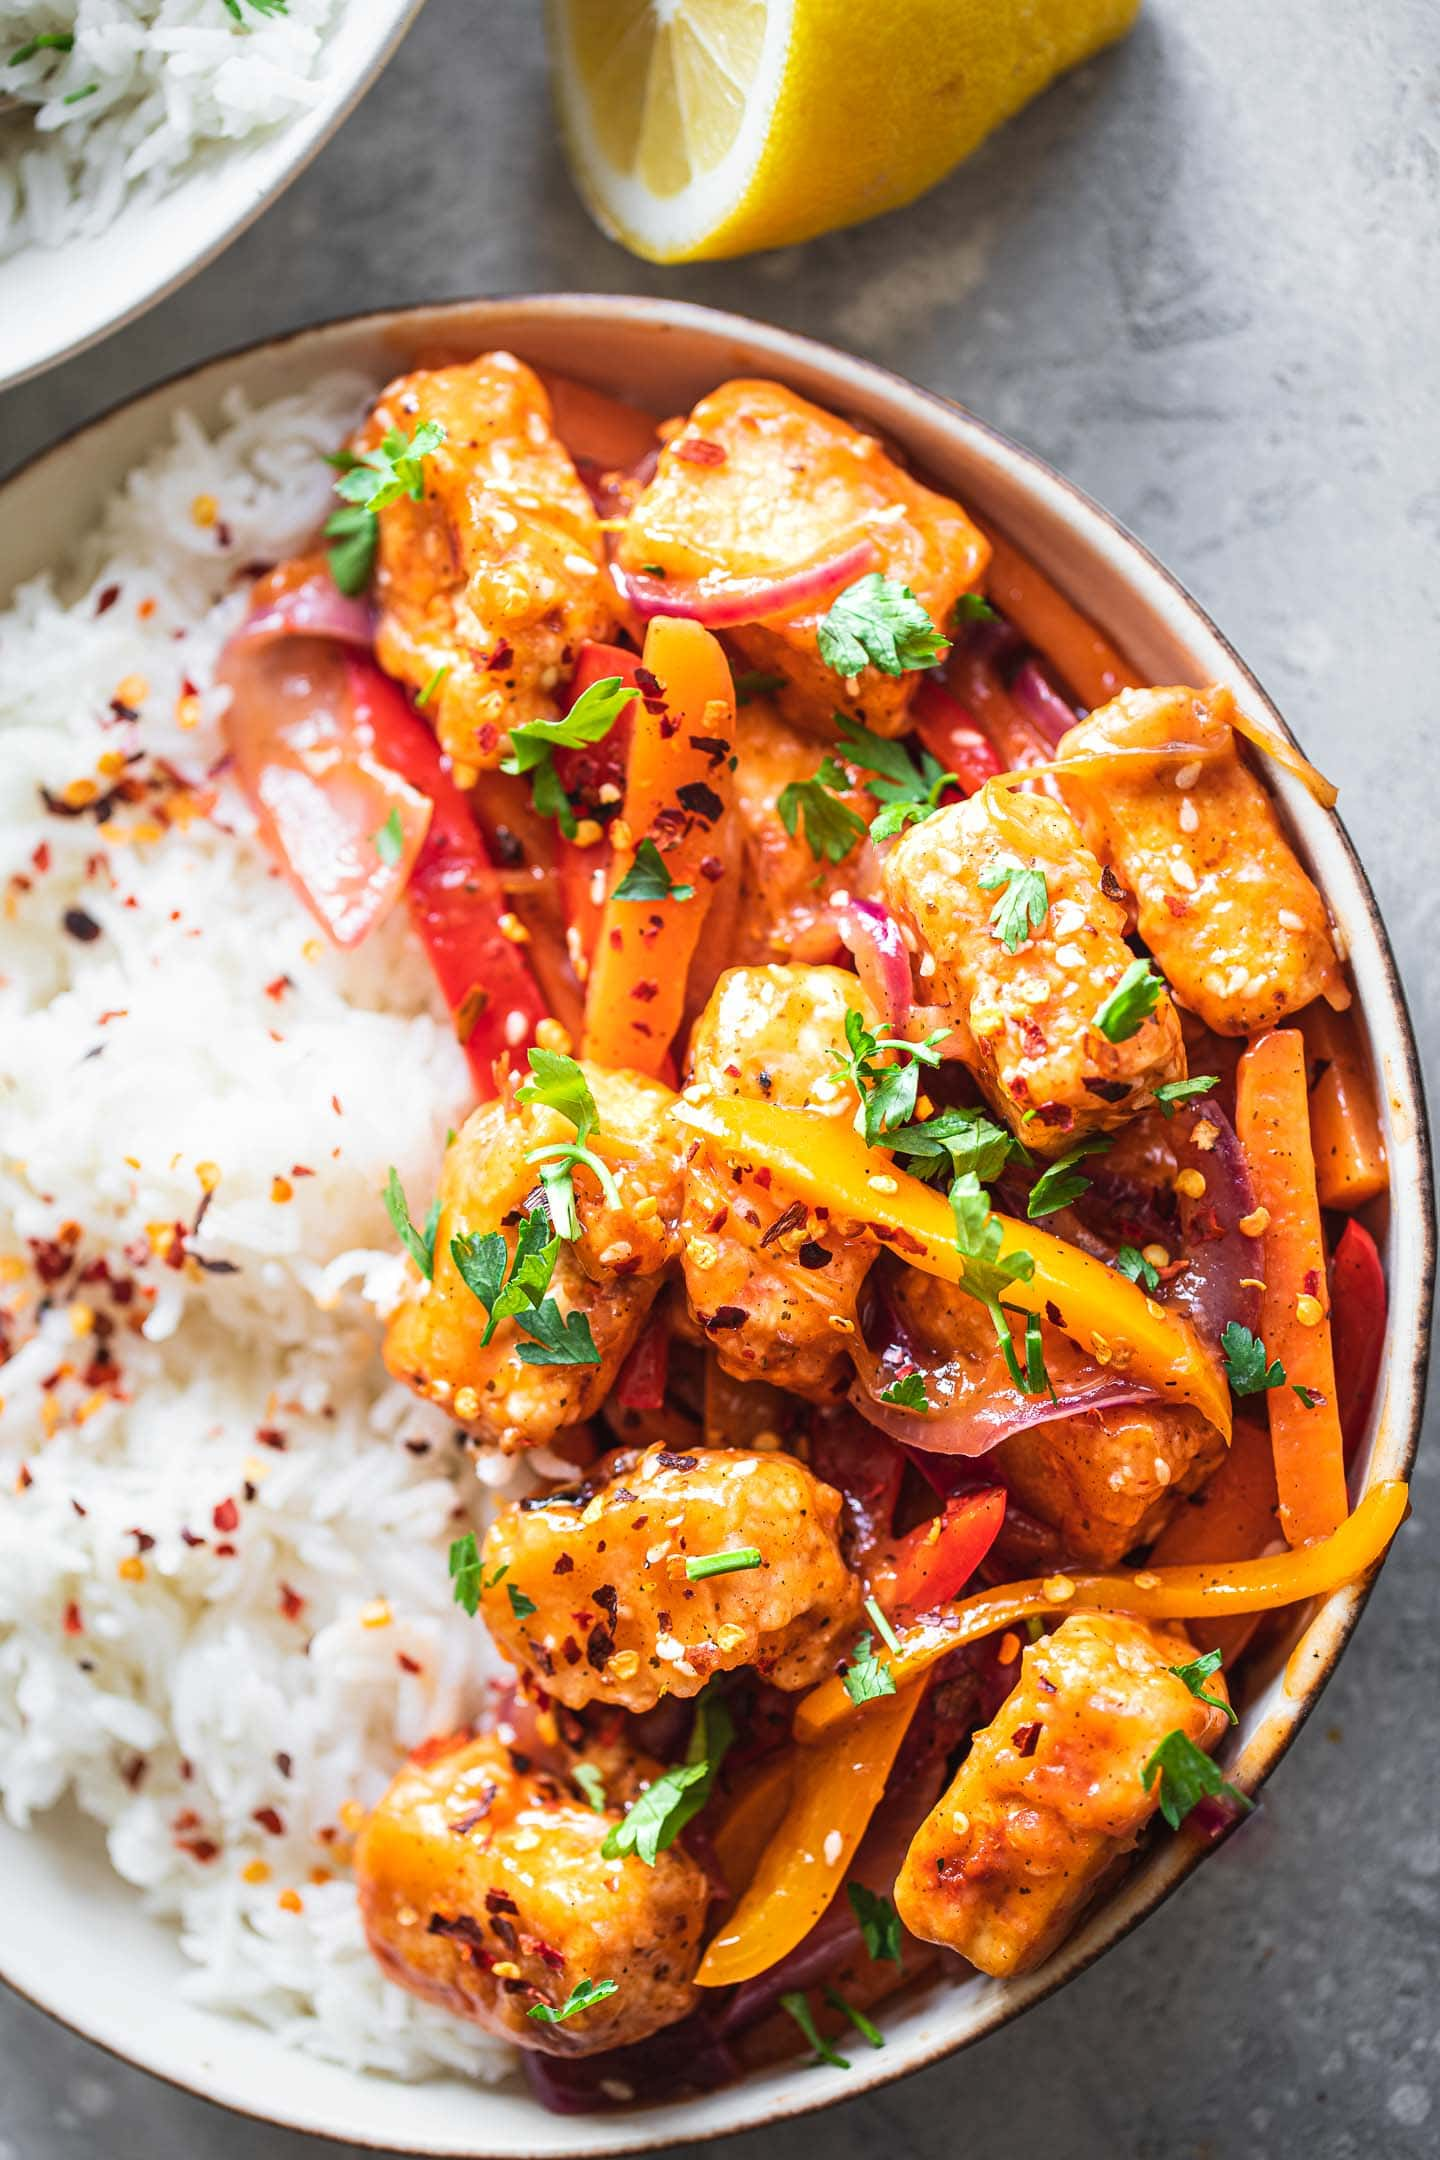 Tofu and sweet and sour sauce with rice